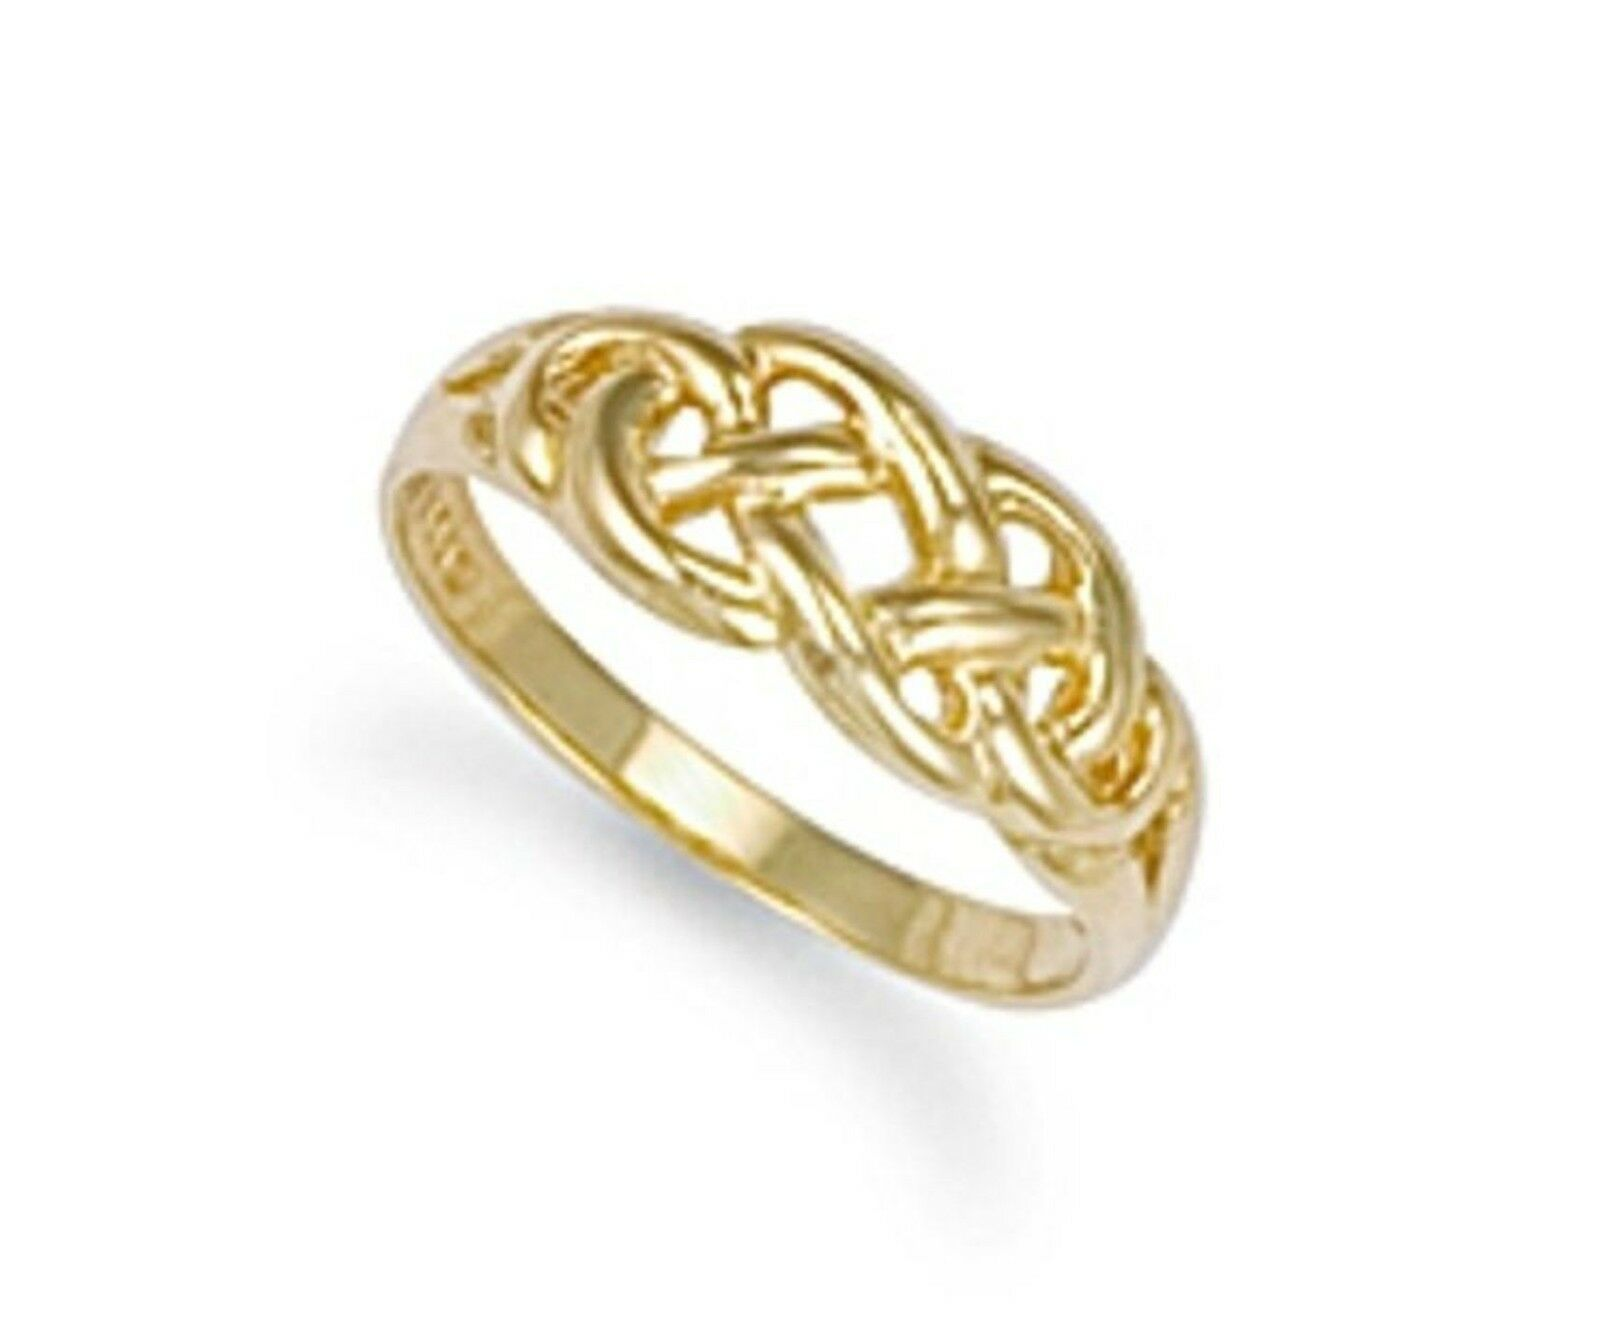 9ct gold Ladies Celtic Knot Ring 2.8g